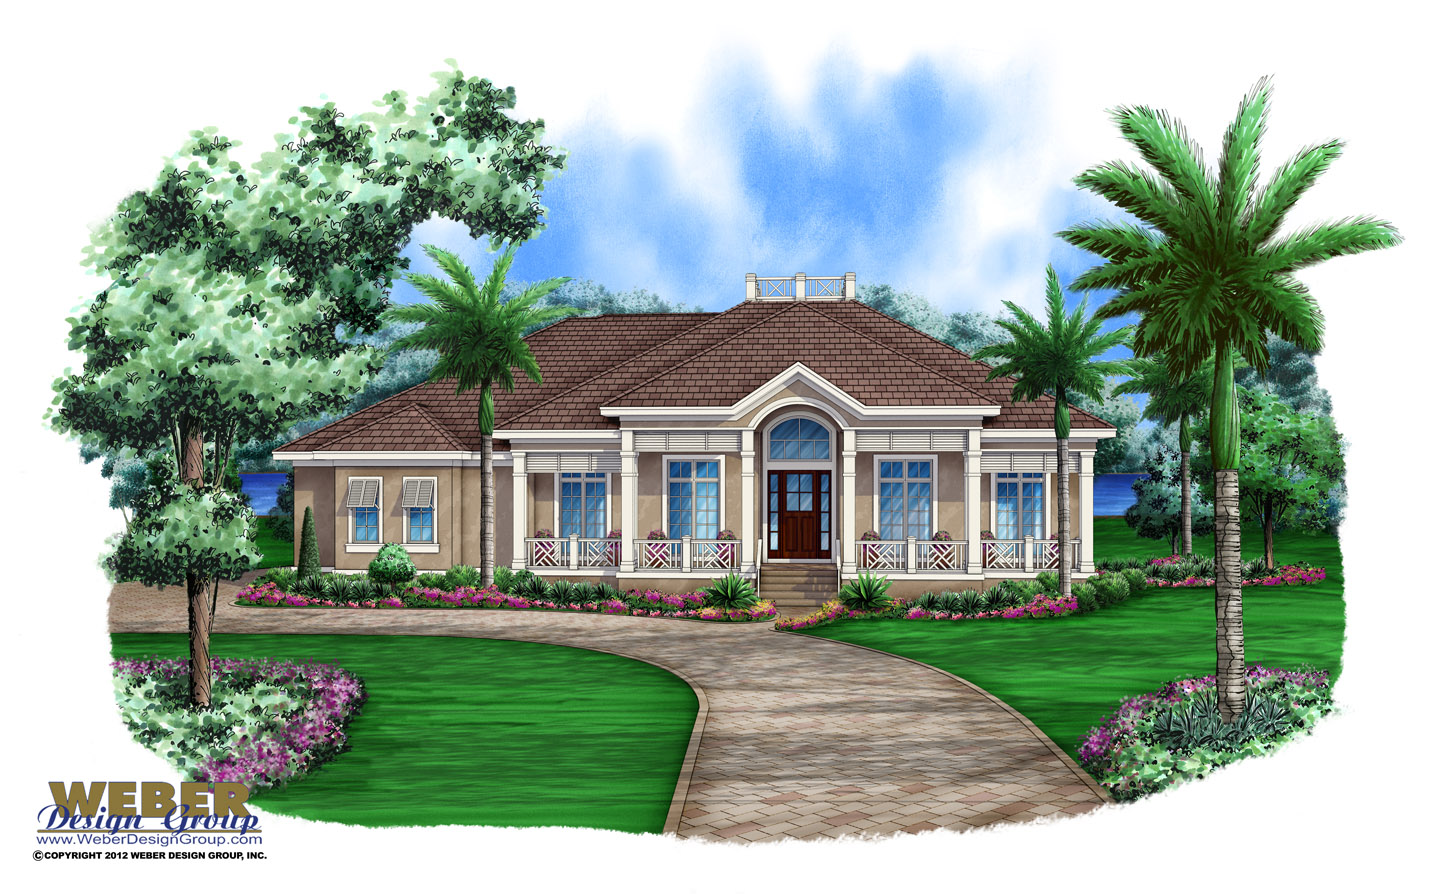 Homes with wrap around porches plan - Aruba House Plan